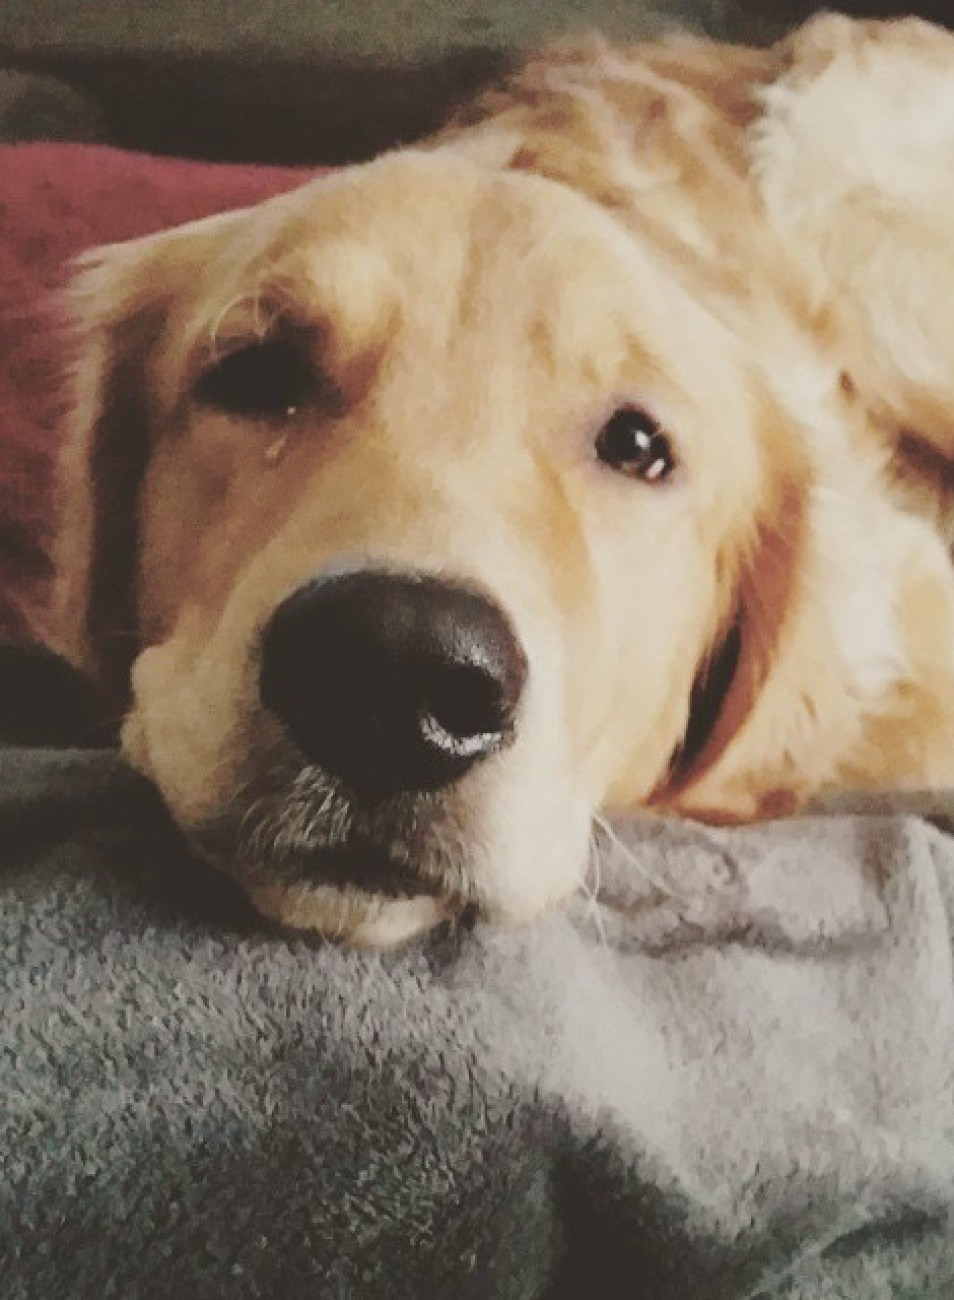 pet names,how to choose a name for your pet, what is important in naming a pet, where does your pet sleep, veterinary costs, how much to spend on your pet, your dog, dog poem, dog quote, Pet grief coach, Judy Helm Wright, artichoke press,